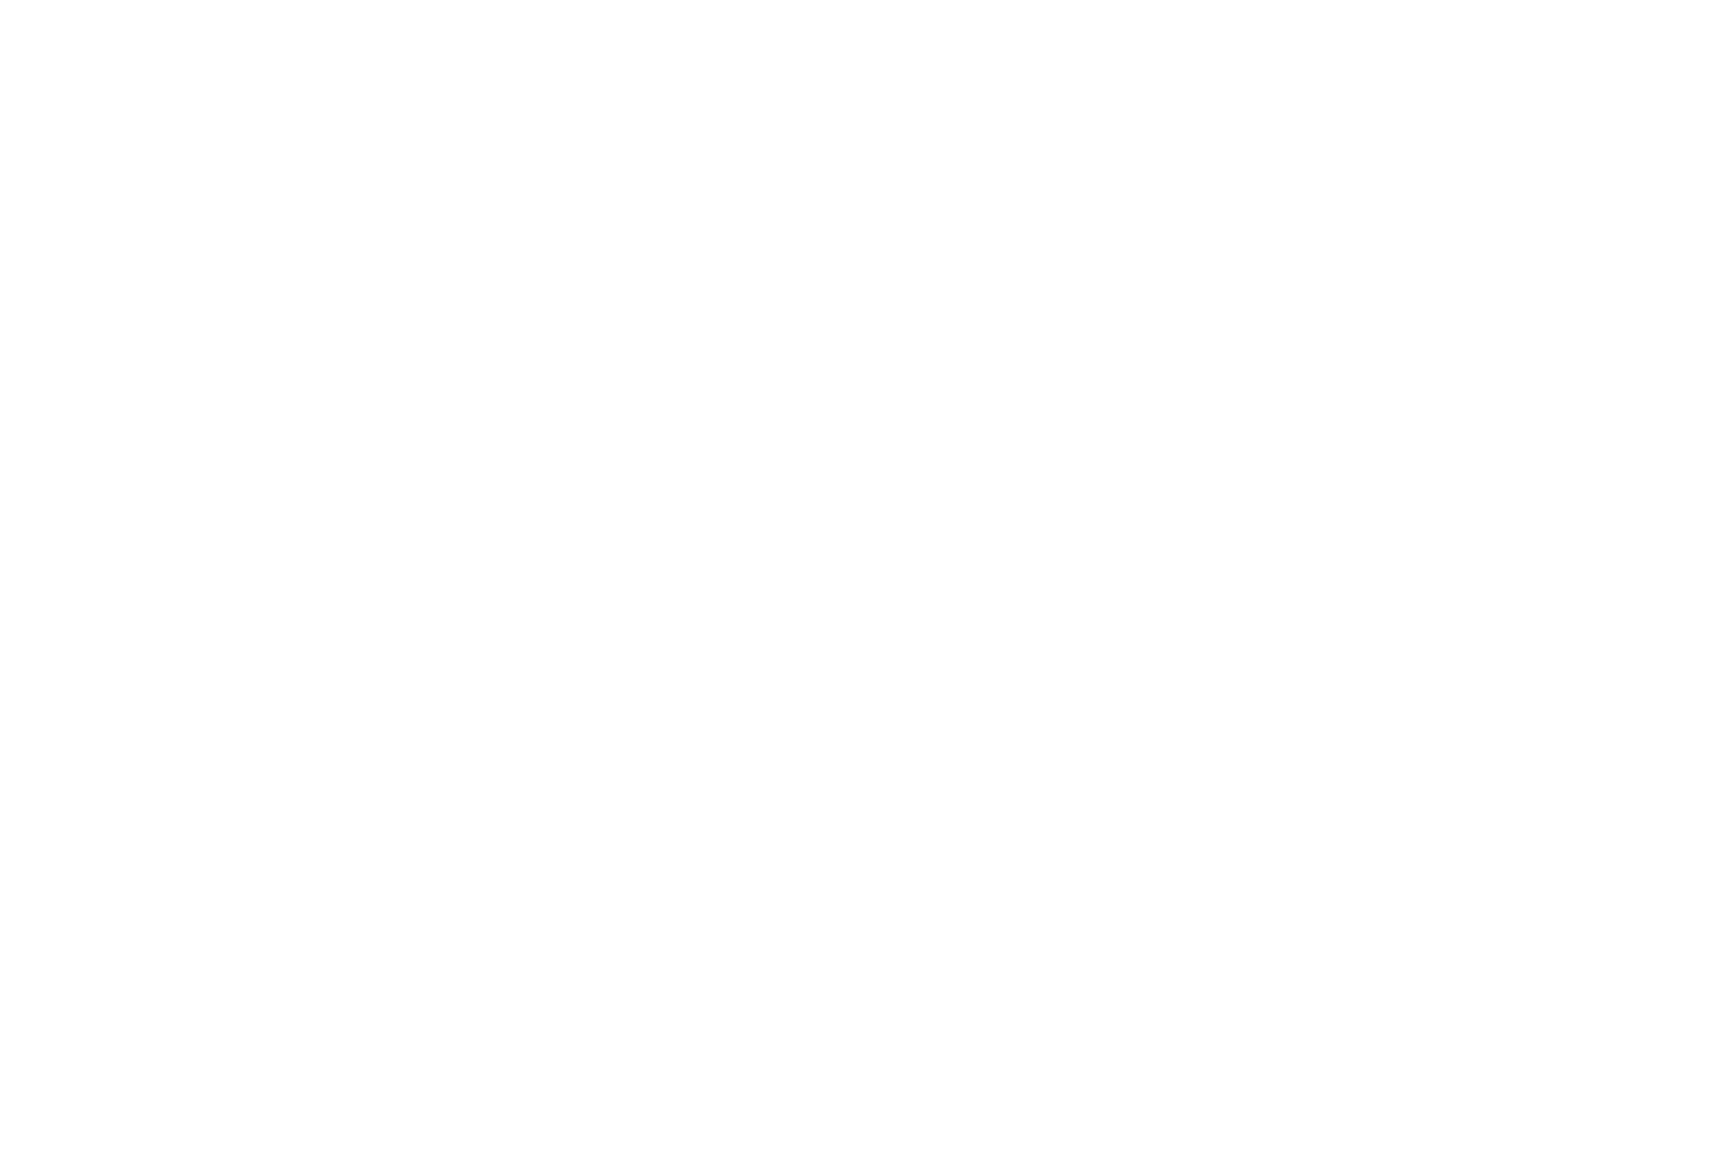 NOMINATED  - BEST DIRECTOR  - HANG ONTO YOUR SHORTS 2017.png